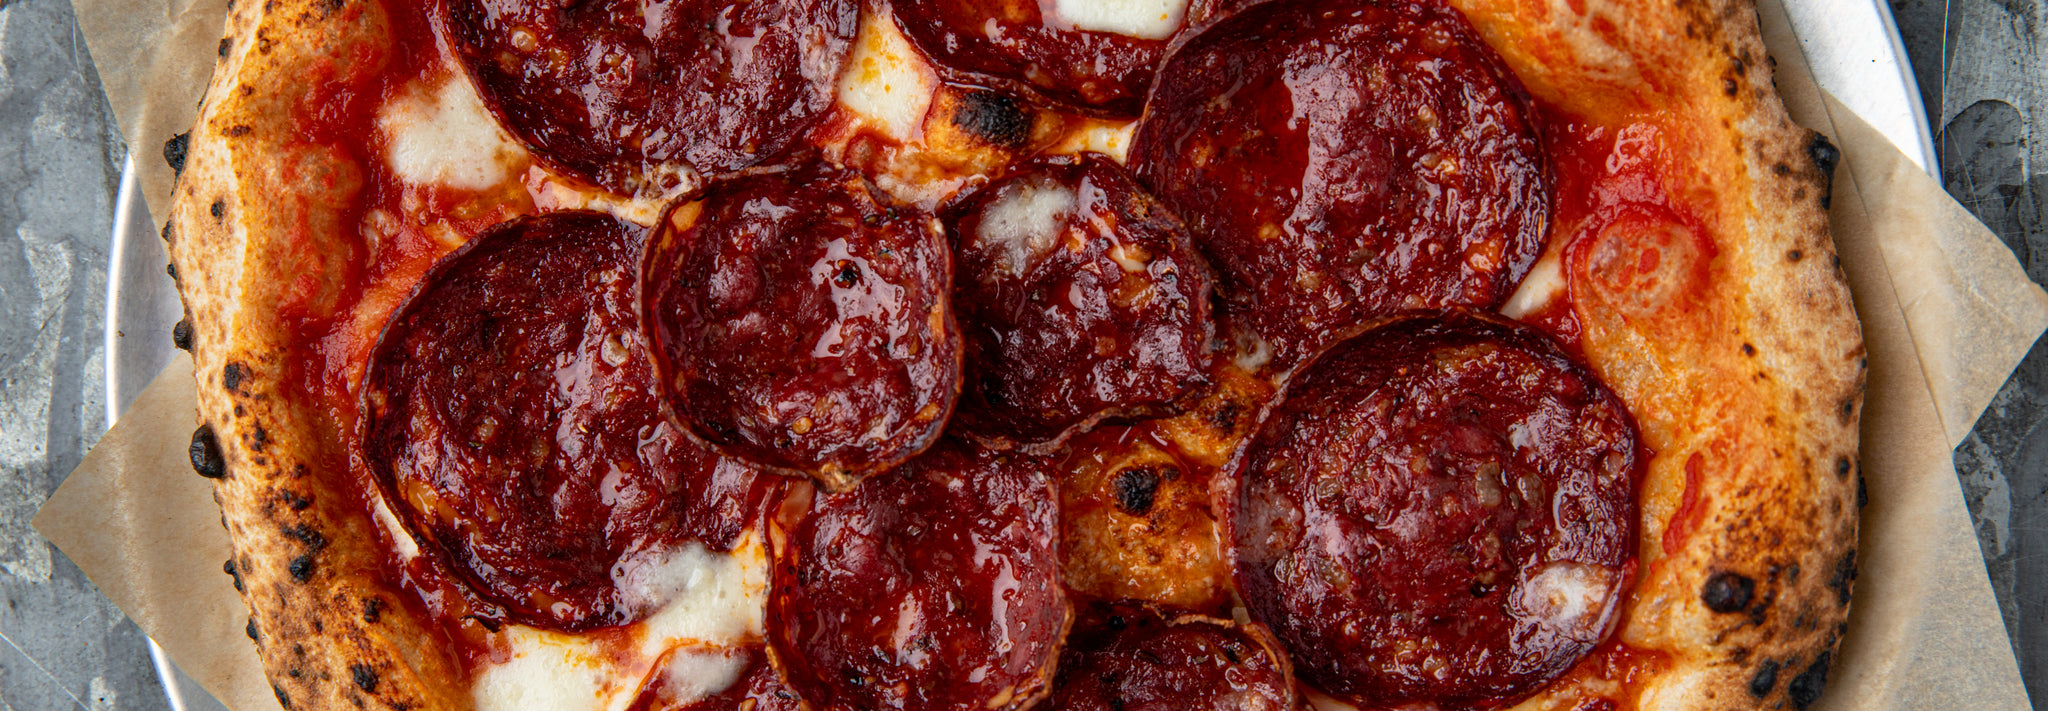 Venison Pepperoni & Hot Honey Pizza